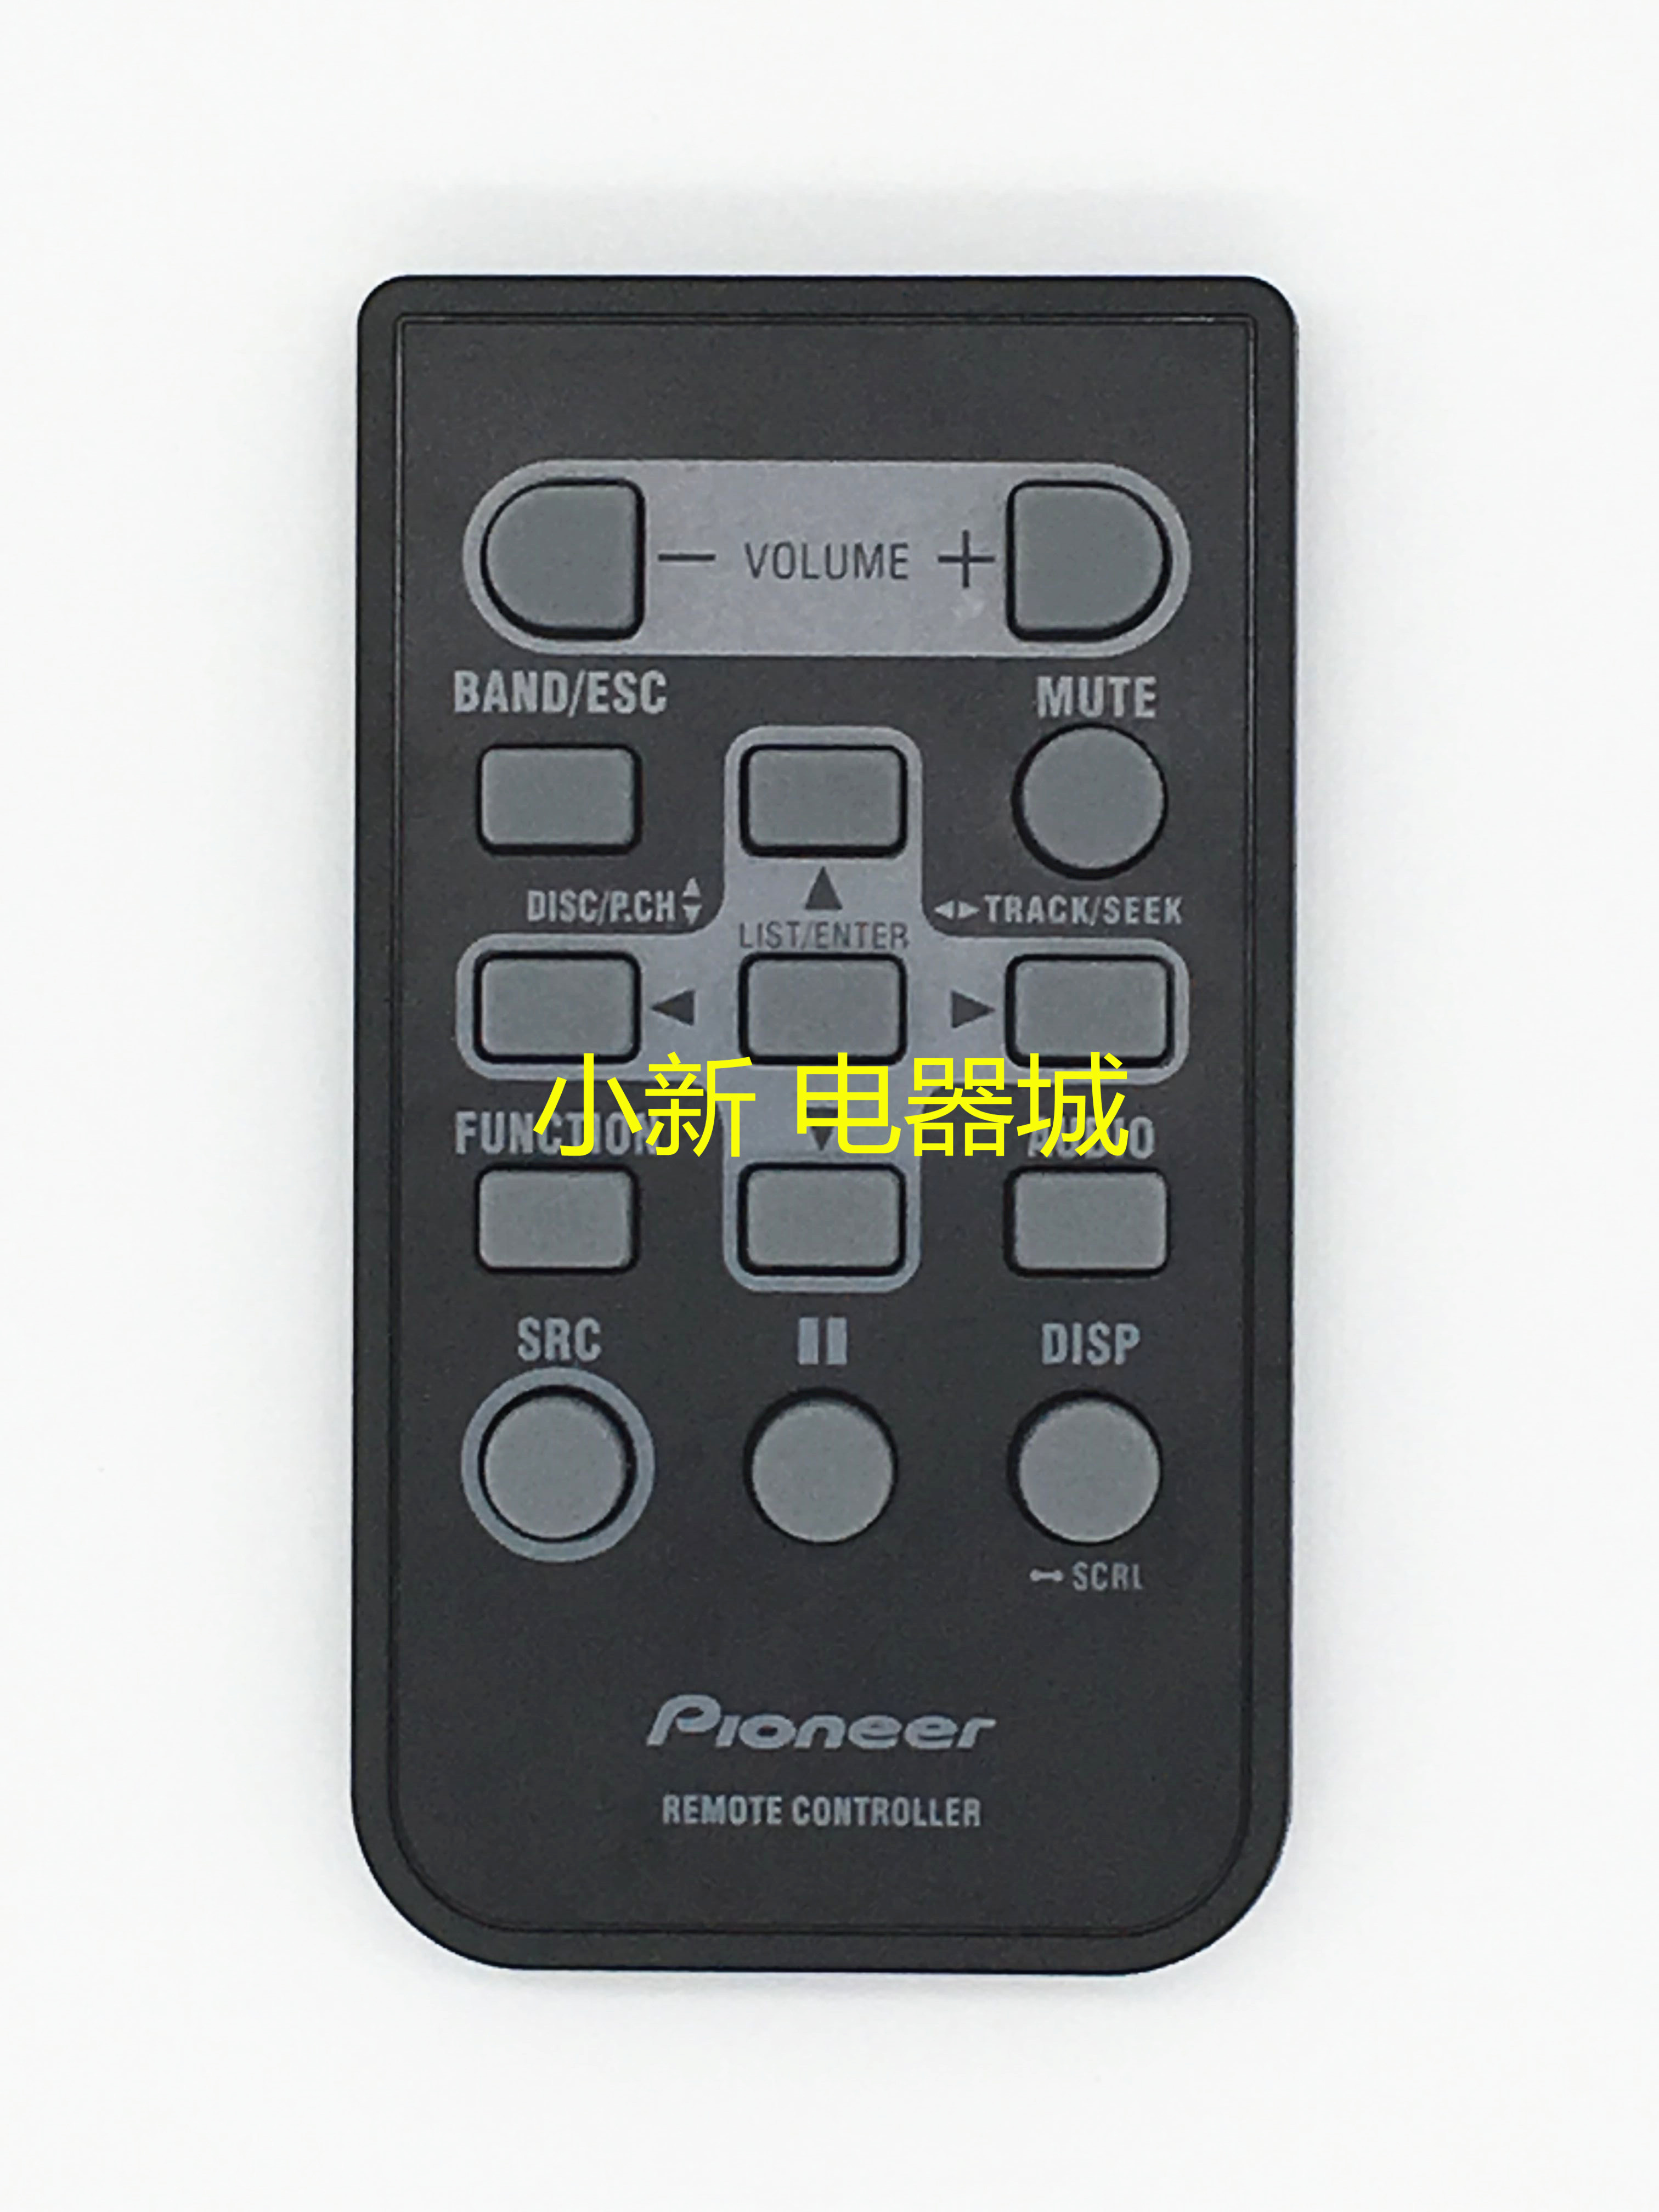 Applicable to the 970 deh-140ub deh-150mp remote control for pioneer car audio